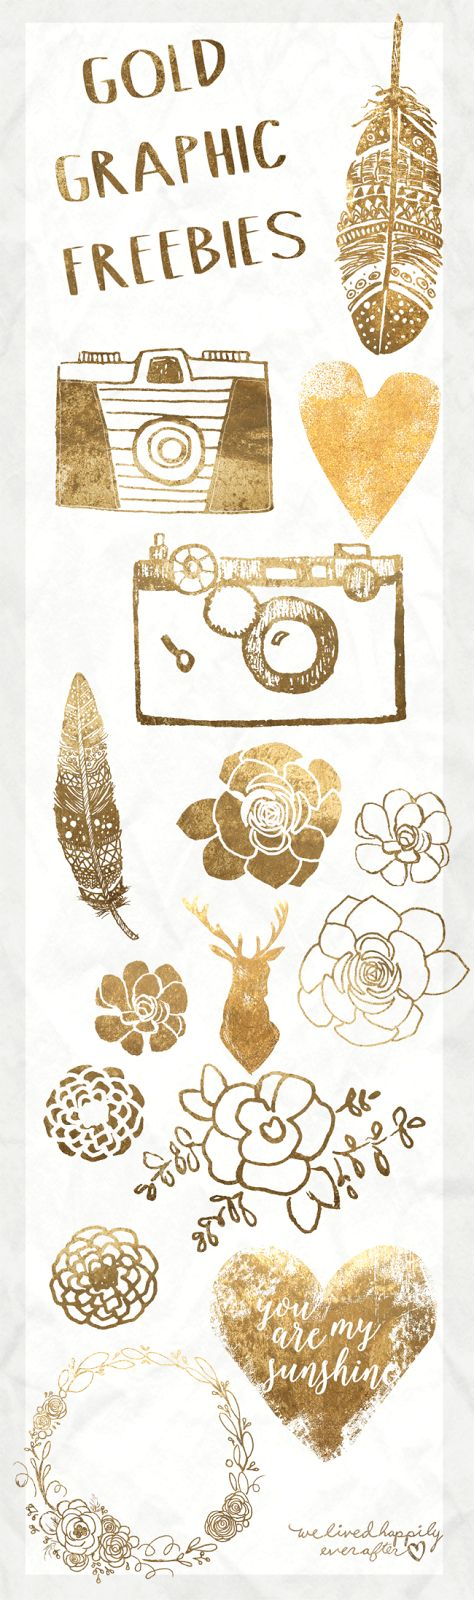 Gold Leaf Digital Graphic Freebies: Gold Leaf Digital Graphic Freebies